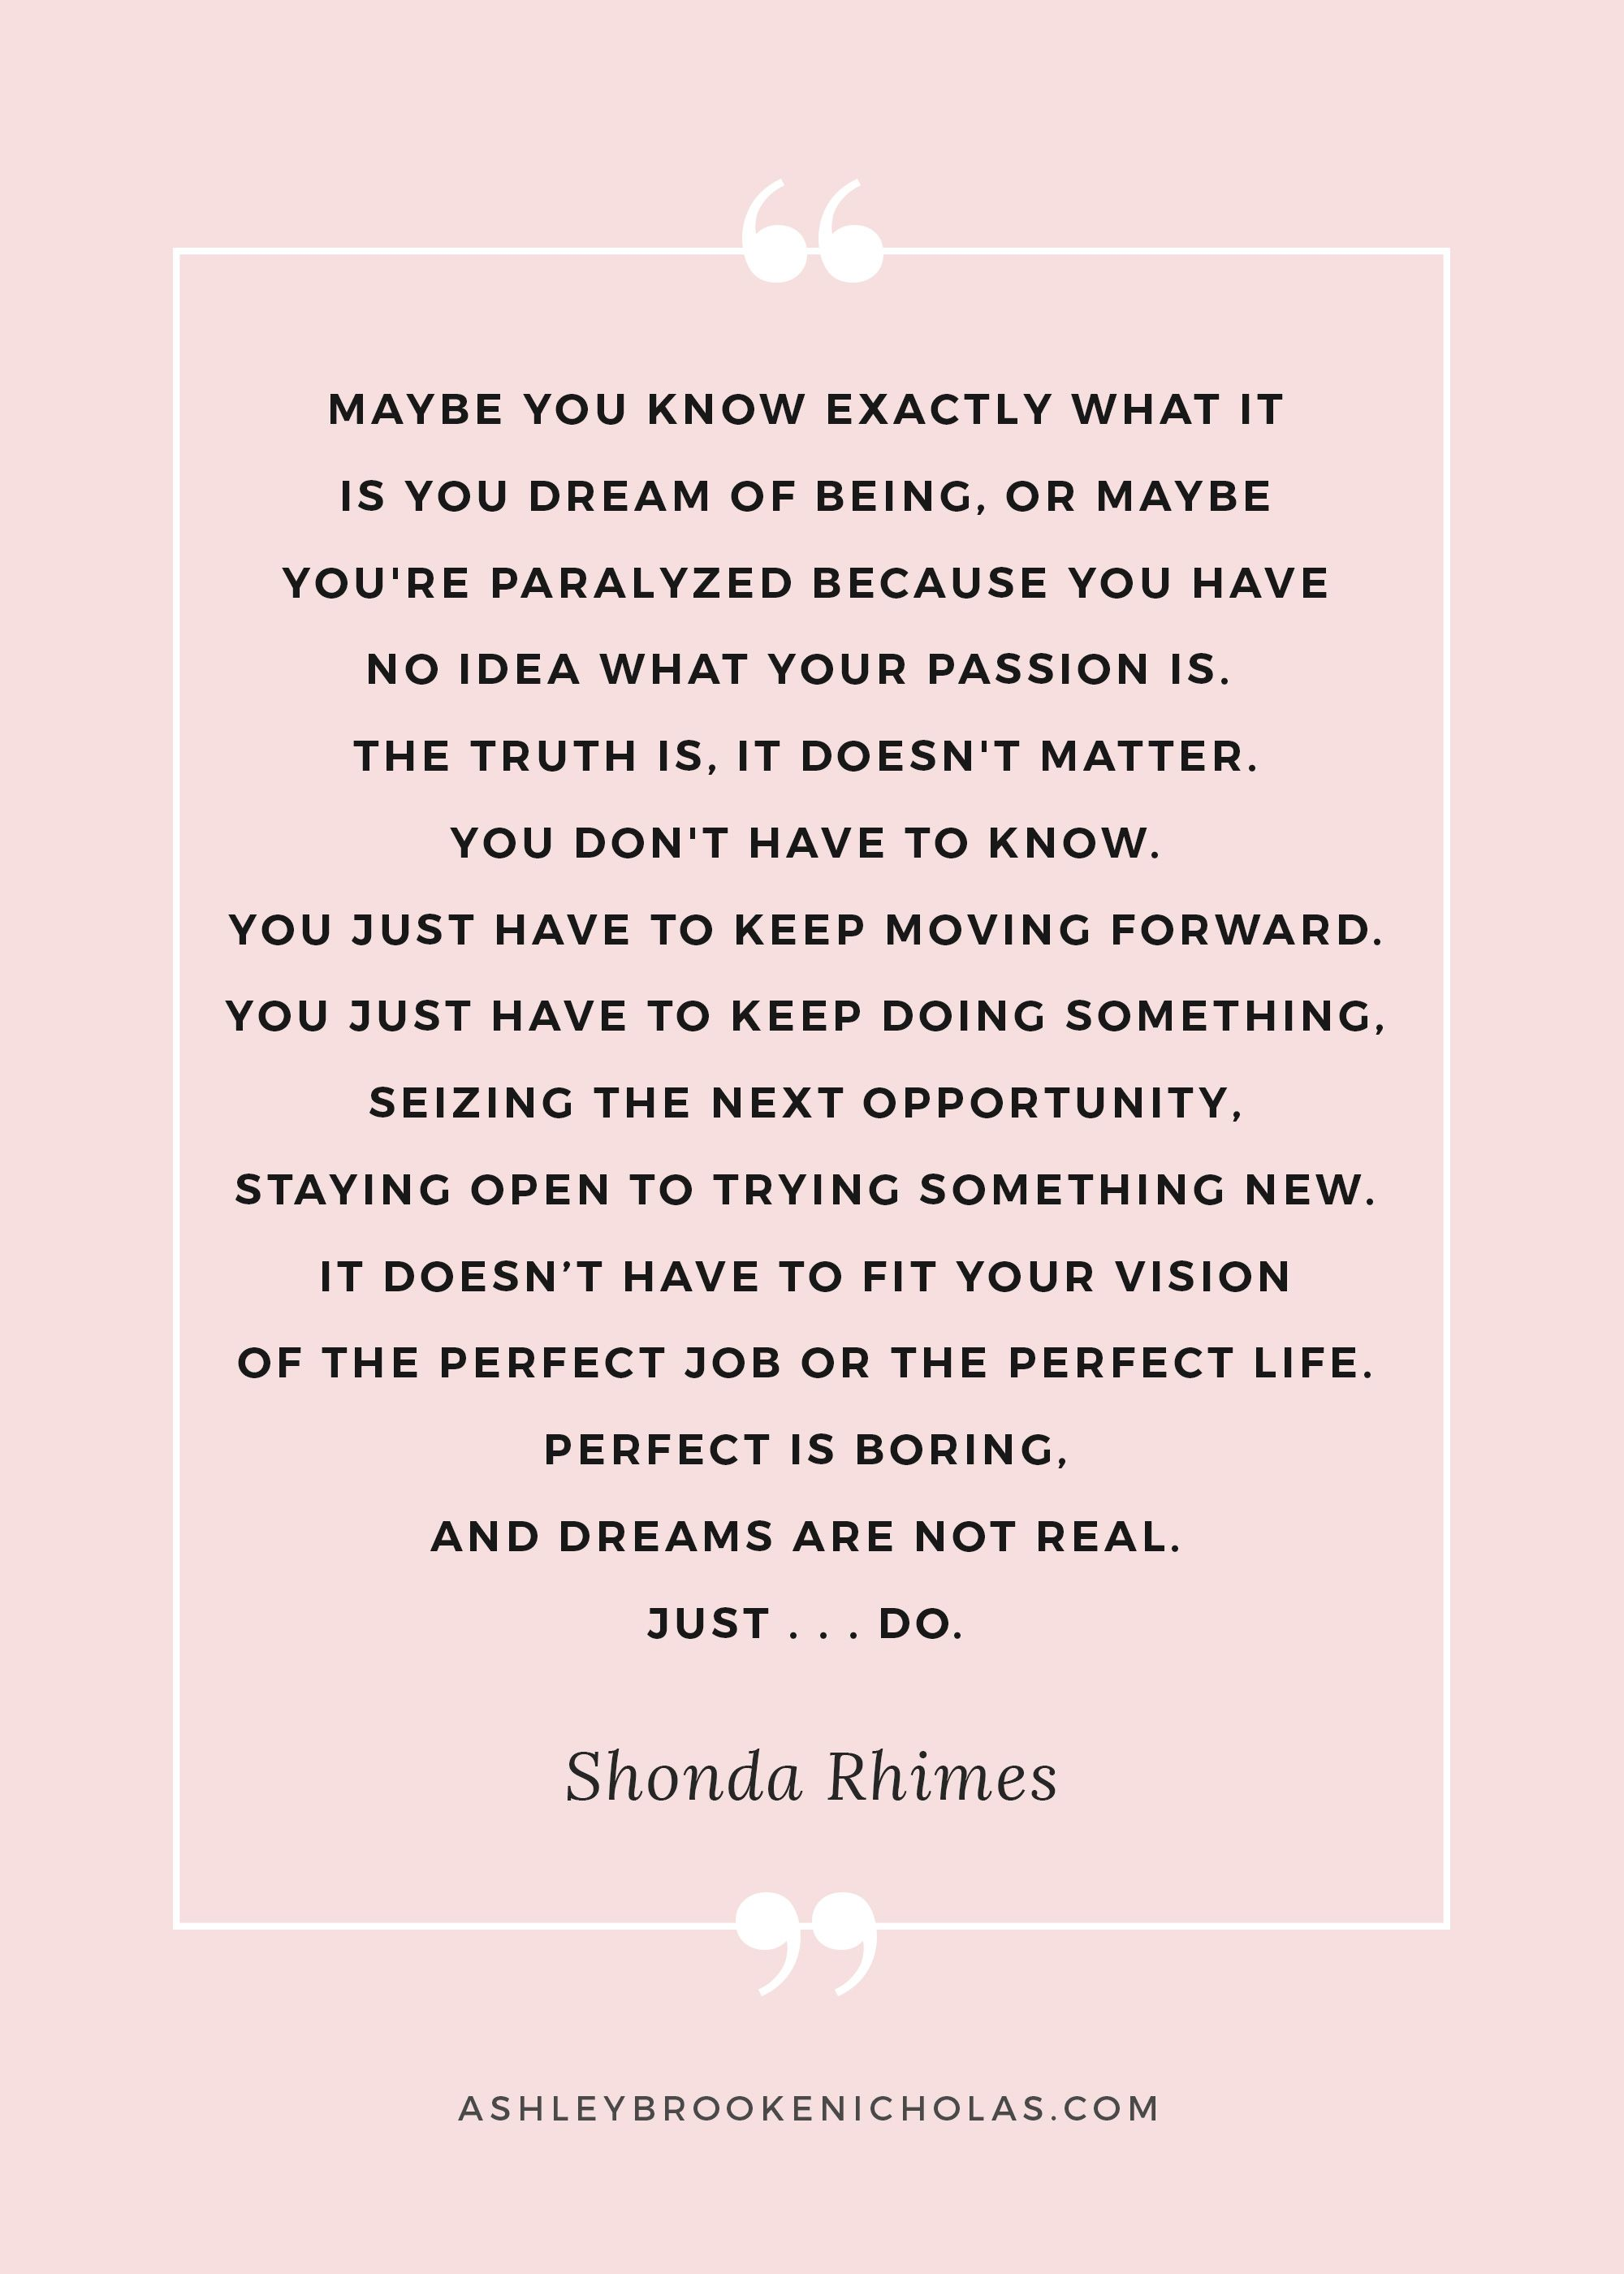 Quotes About Moving Forward In Life 10 Shonda Rhimes Quotes That Will Help You Kick Butt This Week